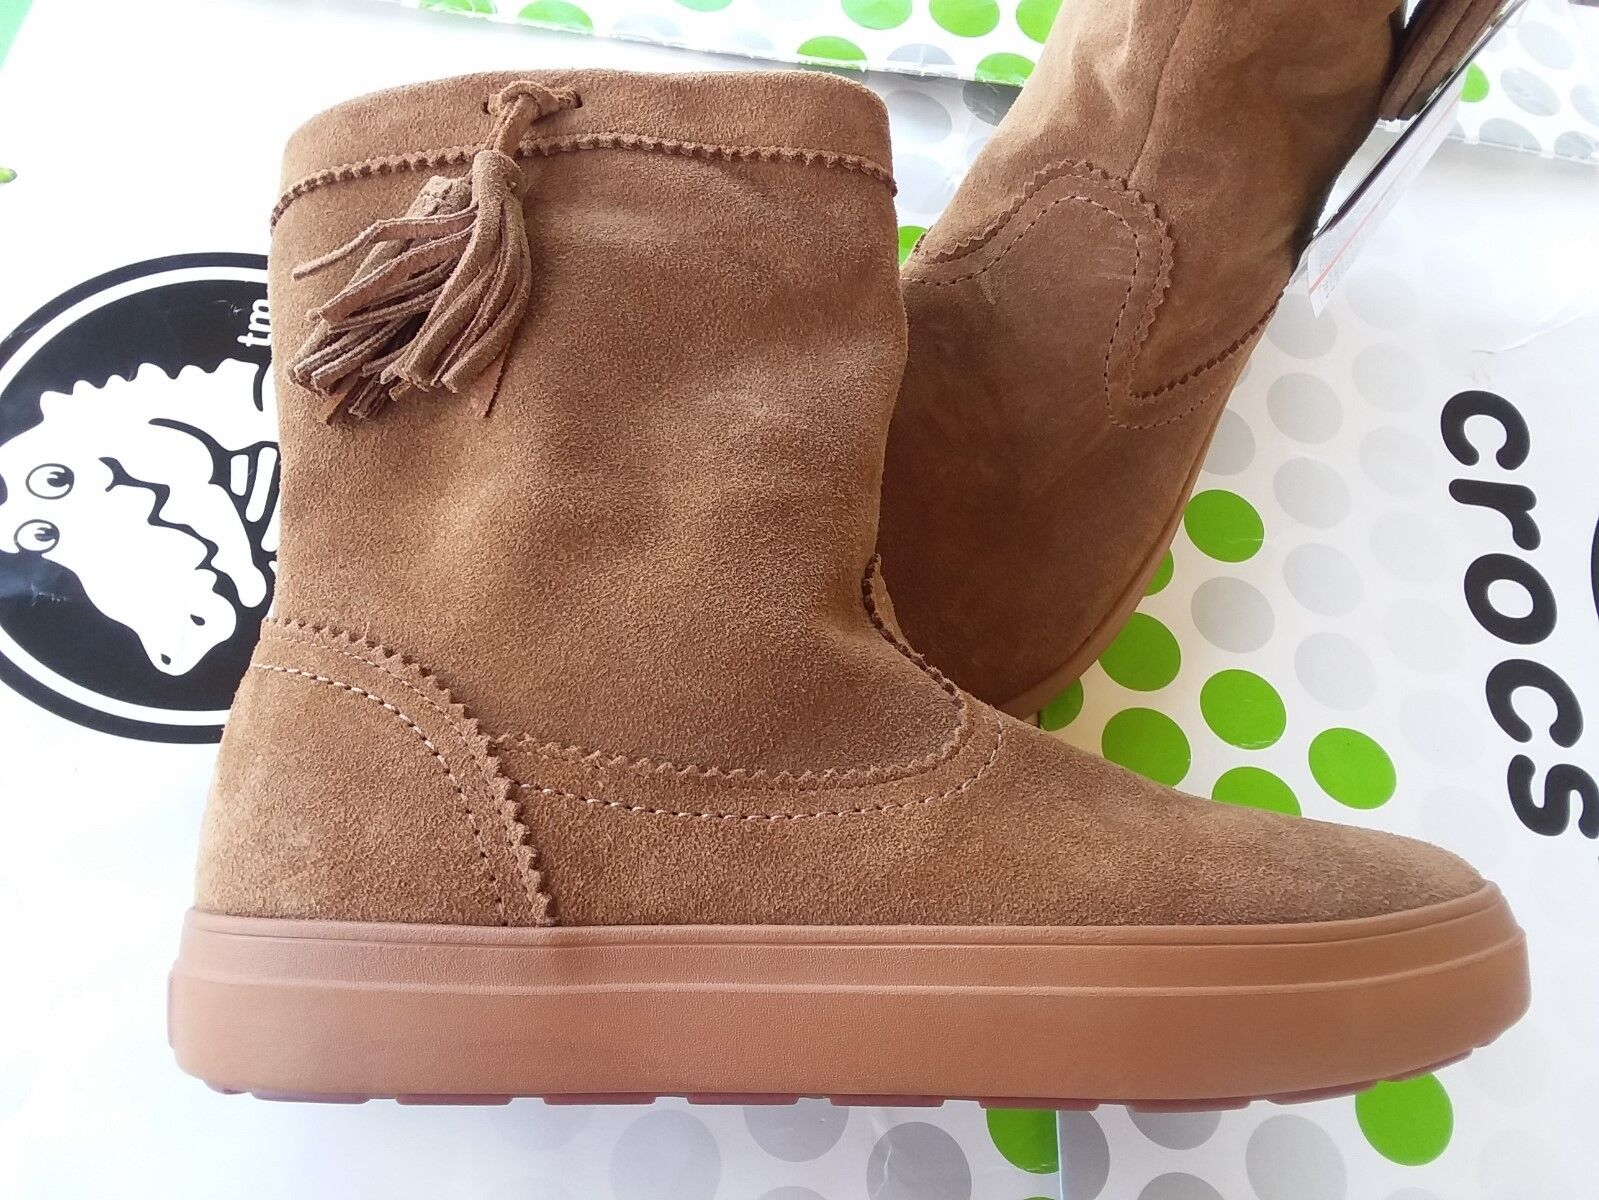 CROCS LODGEPOINT SUEDE PULL ON CROCBAND WINTER HIGH SNOW BOOT~Brown Tan~W 10~NWT